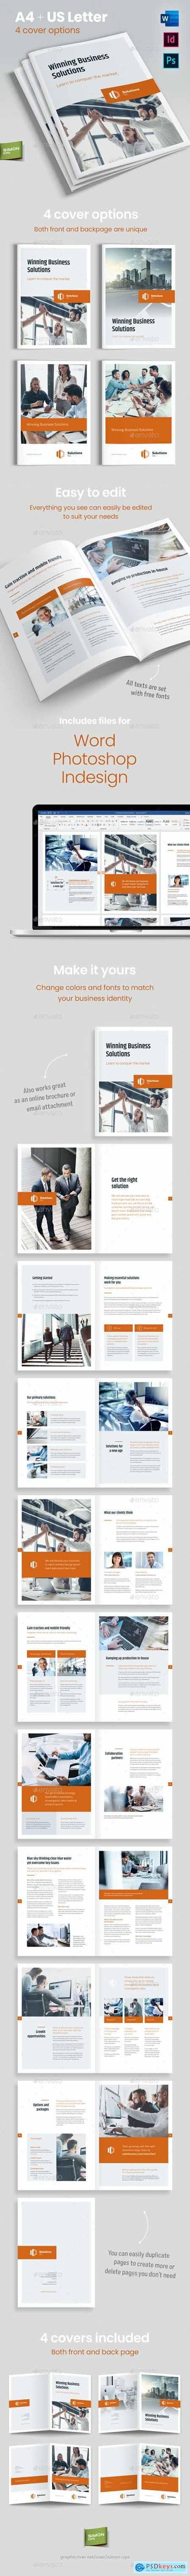 Solutions Inc – Brochure Template for Indesign, Photoshop and Word 24904739